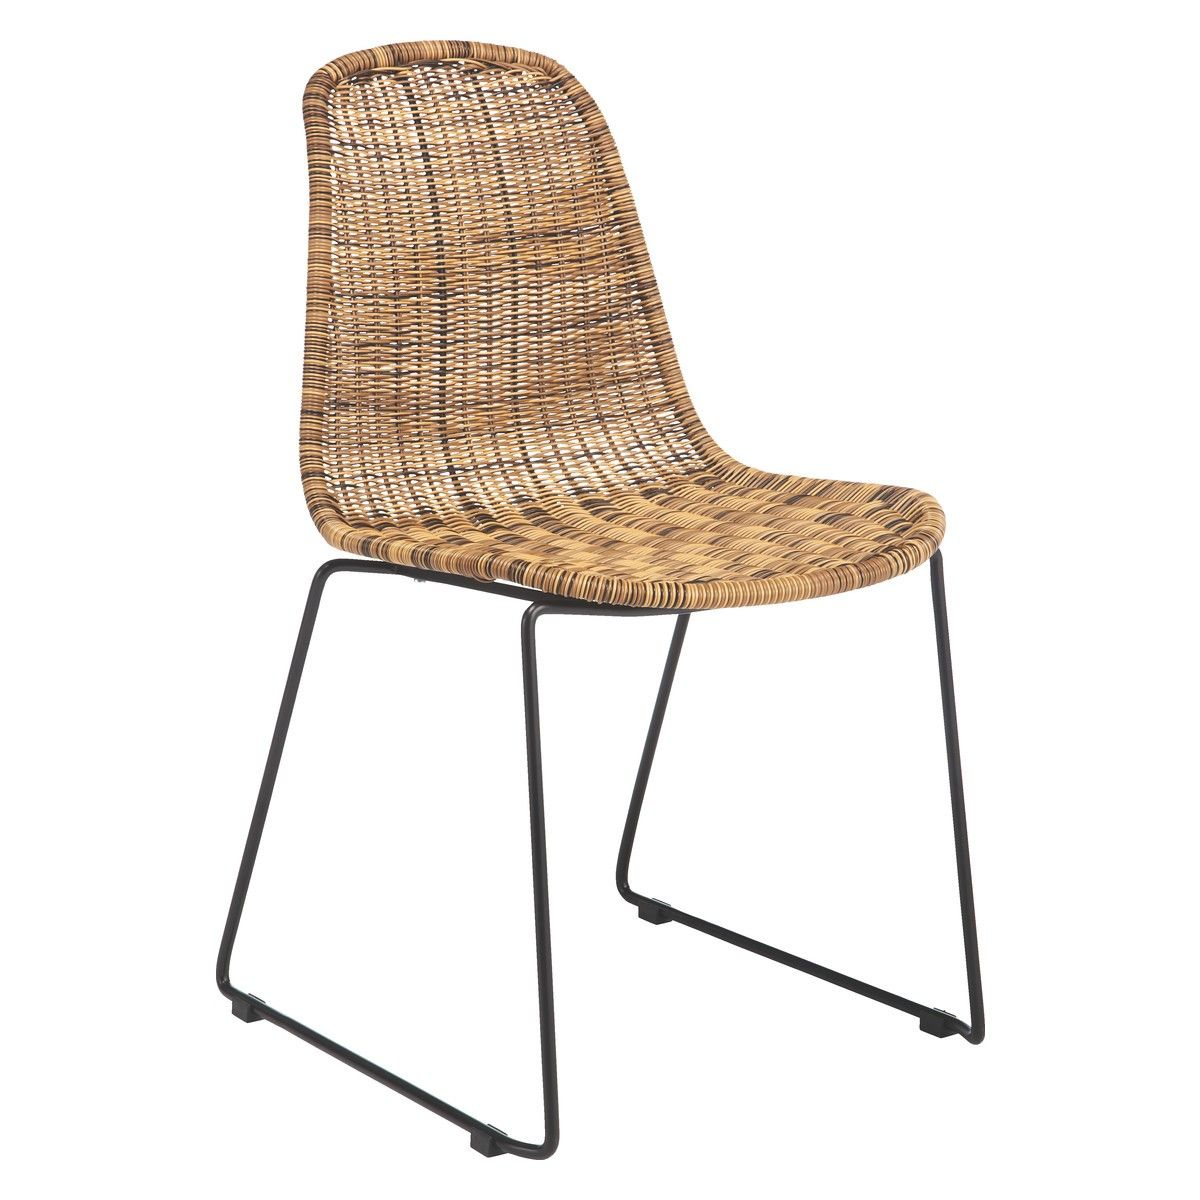 MICKEY Synthetic rattan dining chair | Rattan dining chairs, Rattan ...